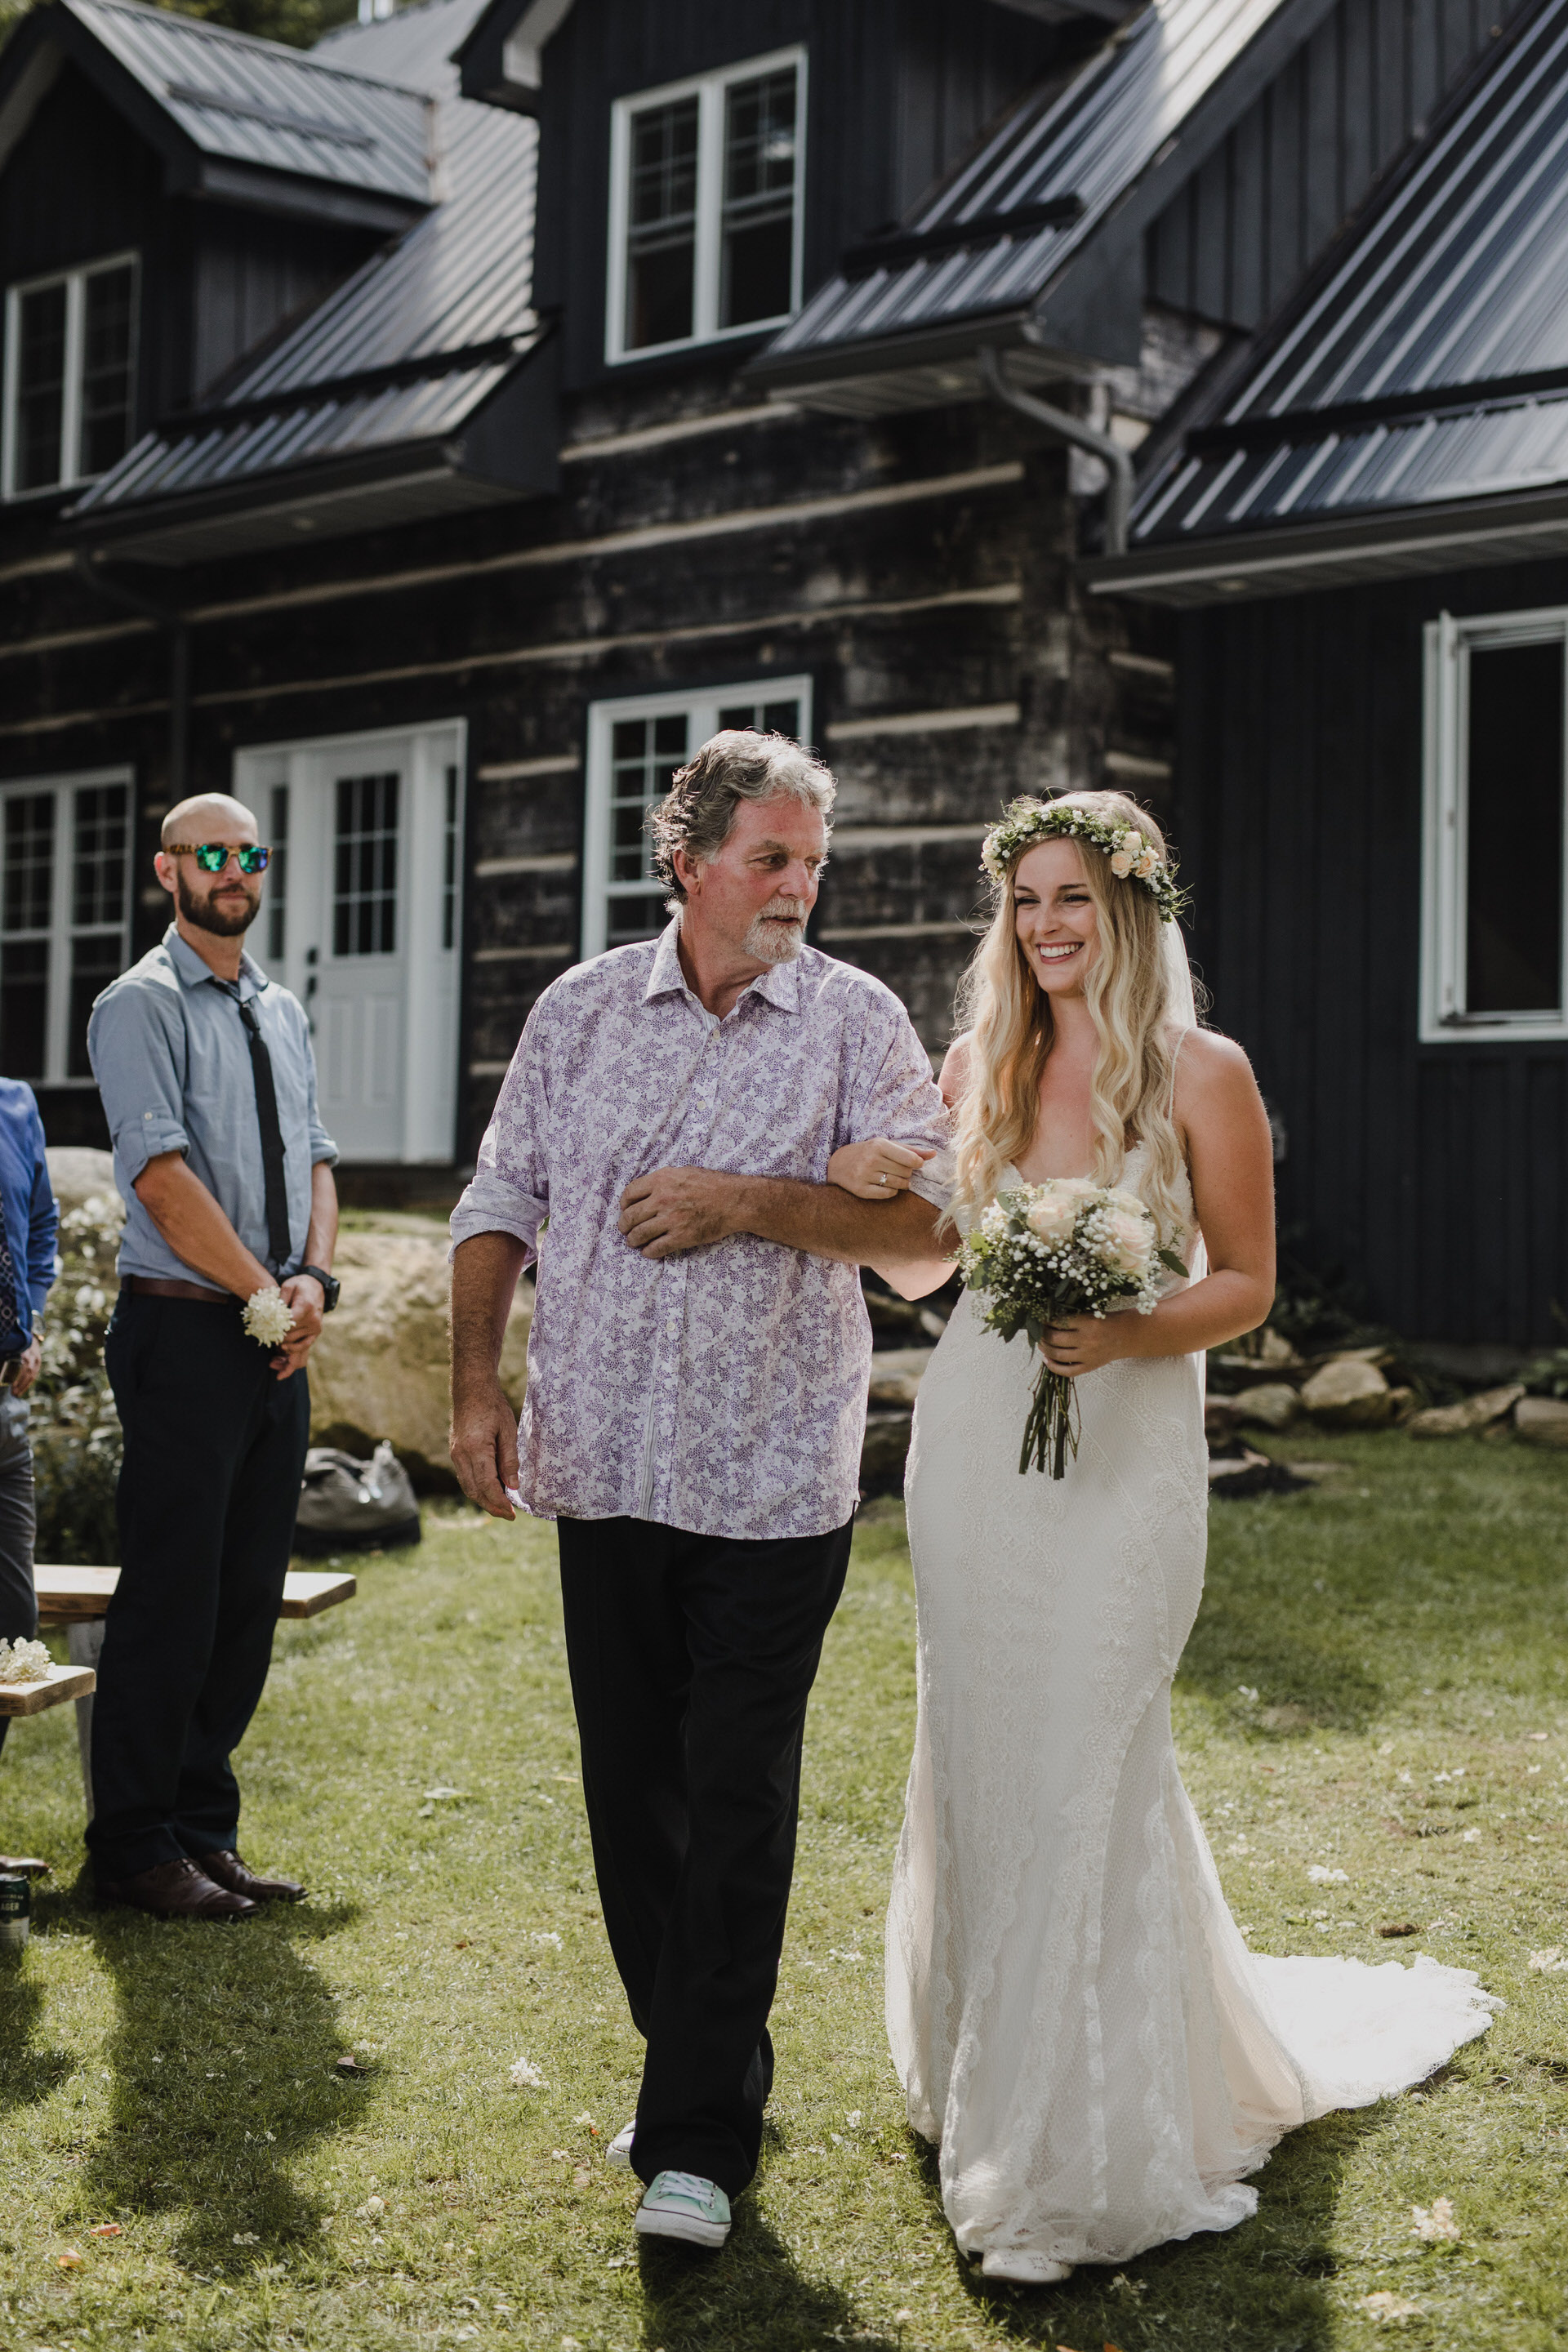 Muskoka Wedding - walking down the aisle